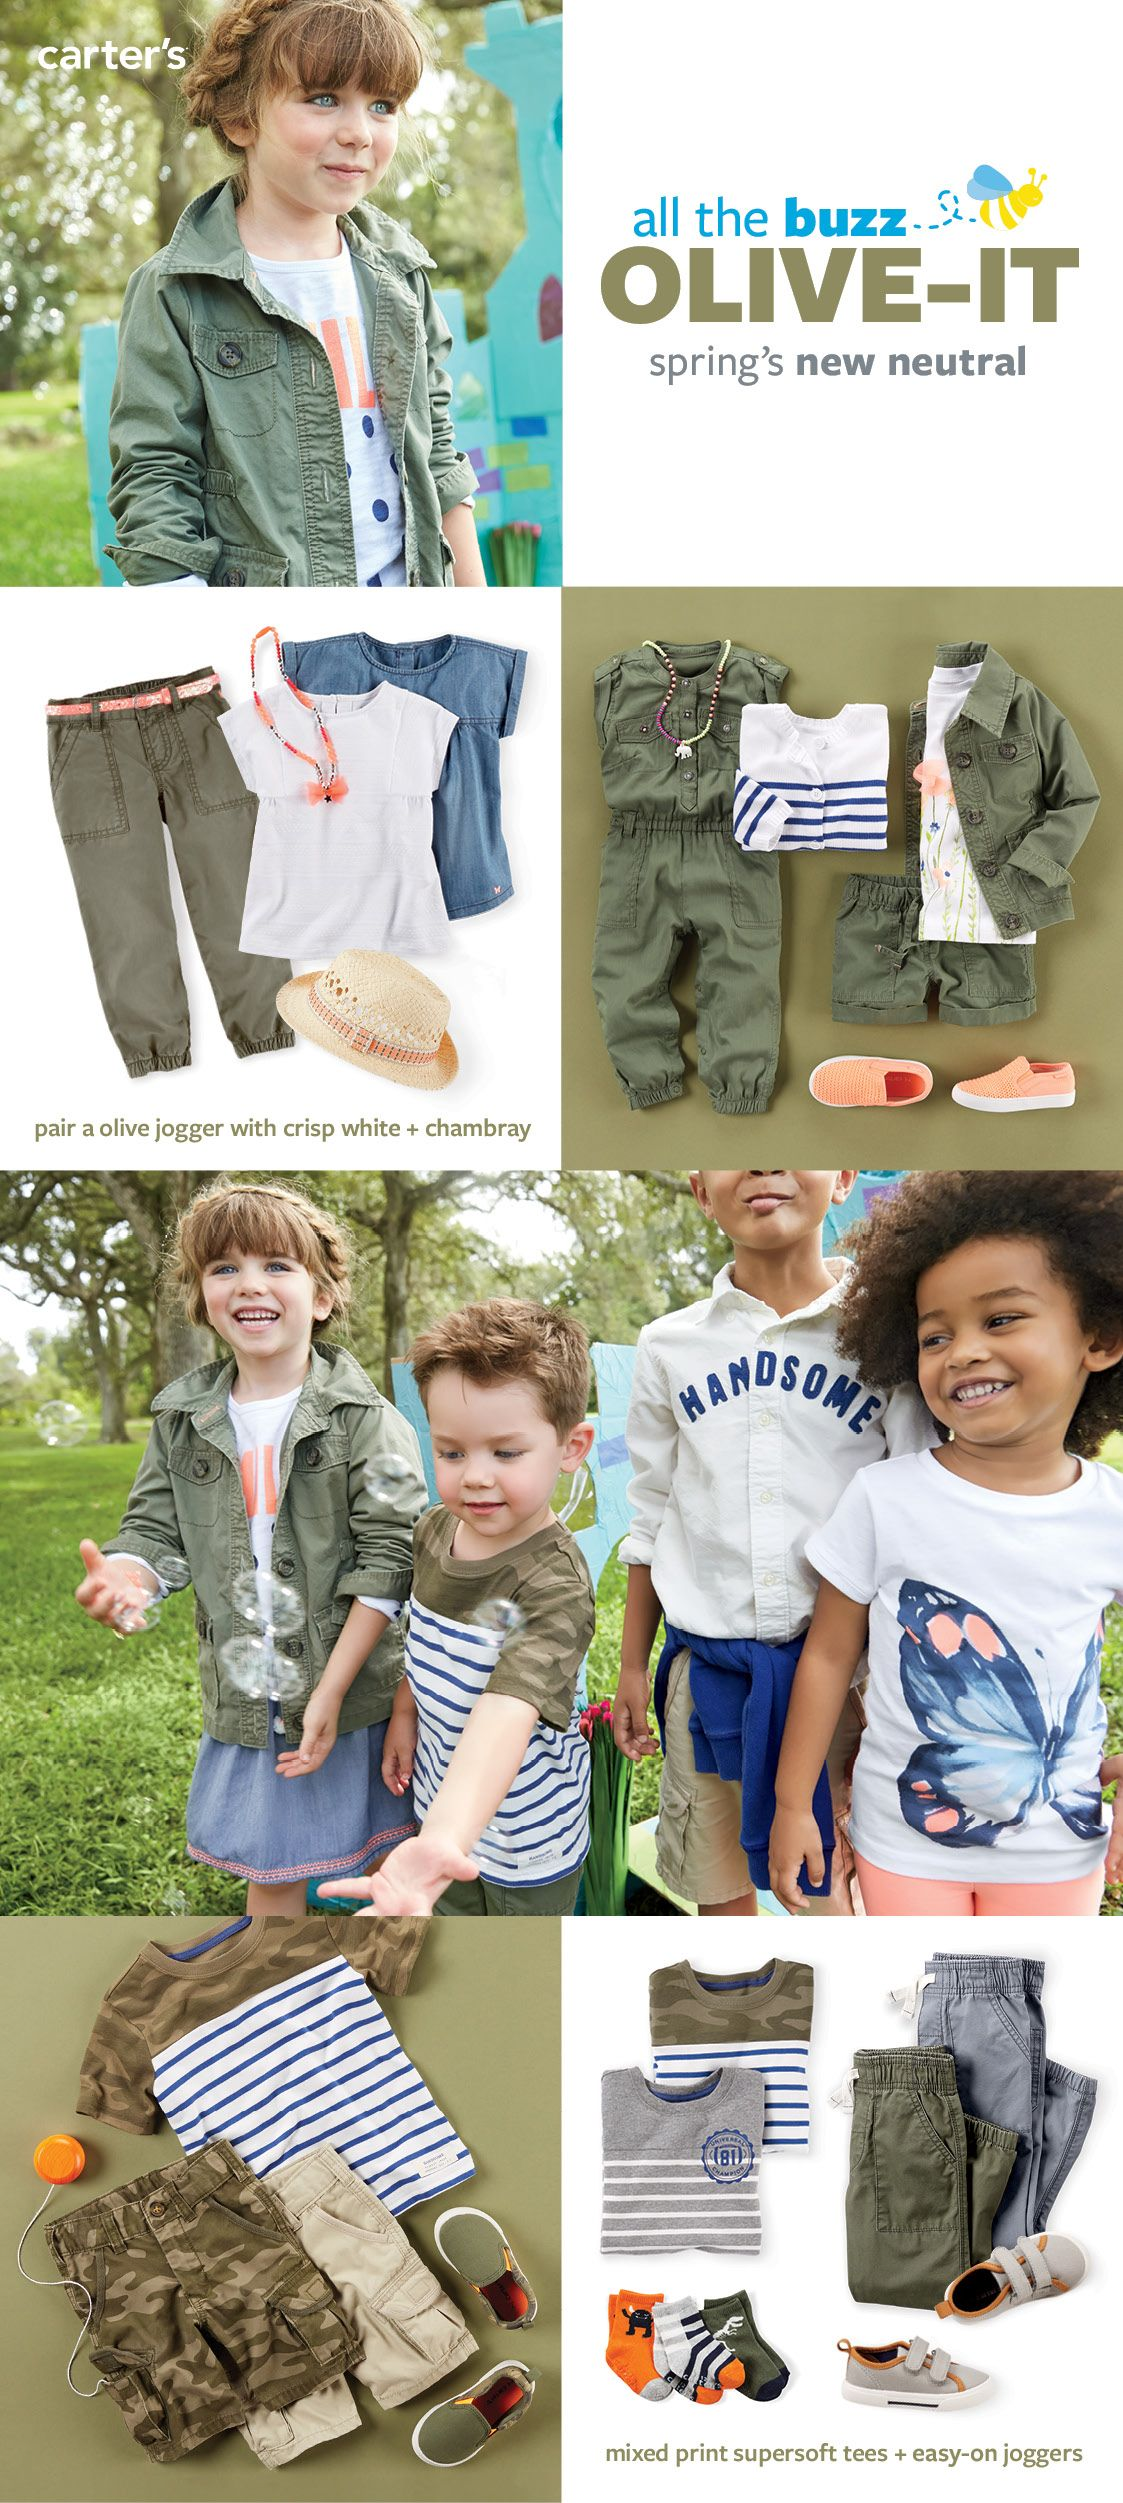 We love taking a trendy color and making it fresh and wearable for kids! We added fresh white with pops of peach to our olive utility statement for girls. And mixed the camo print cargo statement with stripes for boys. Find your favorite combination at carters.com